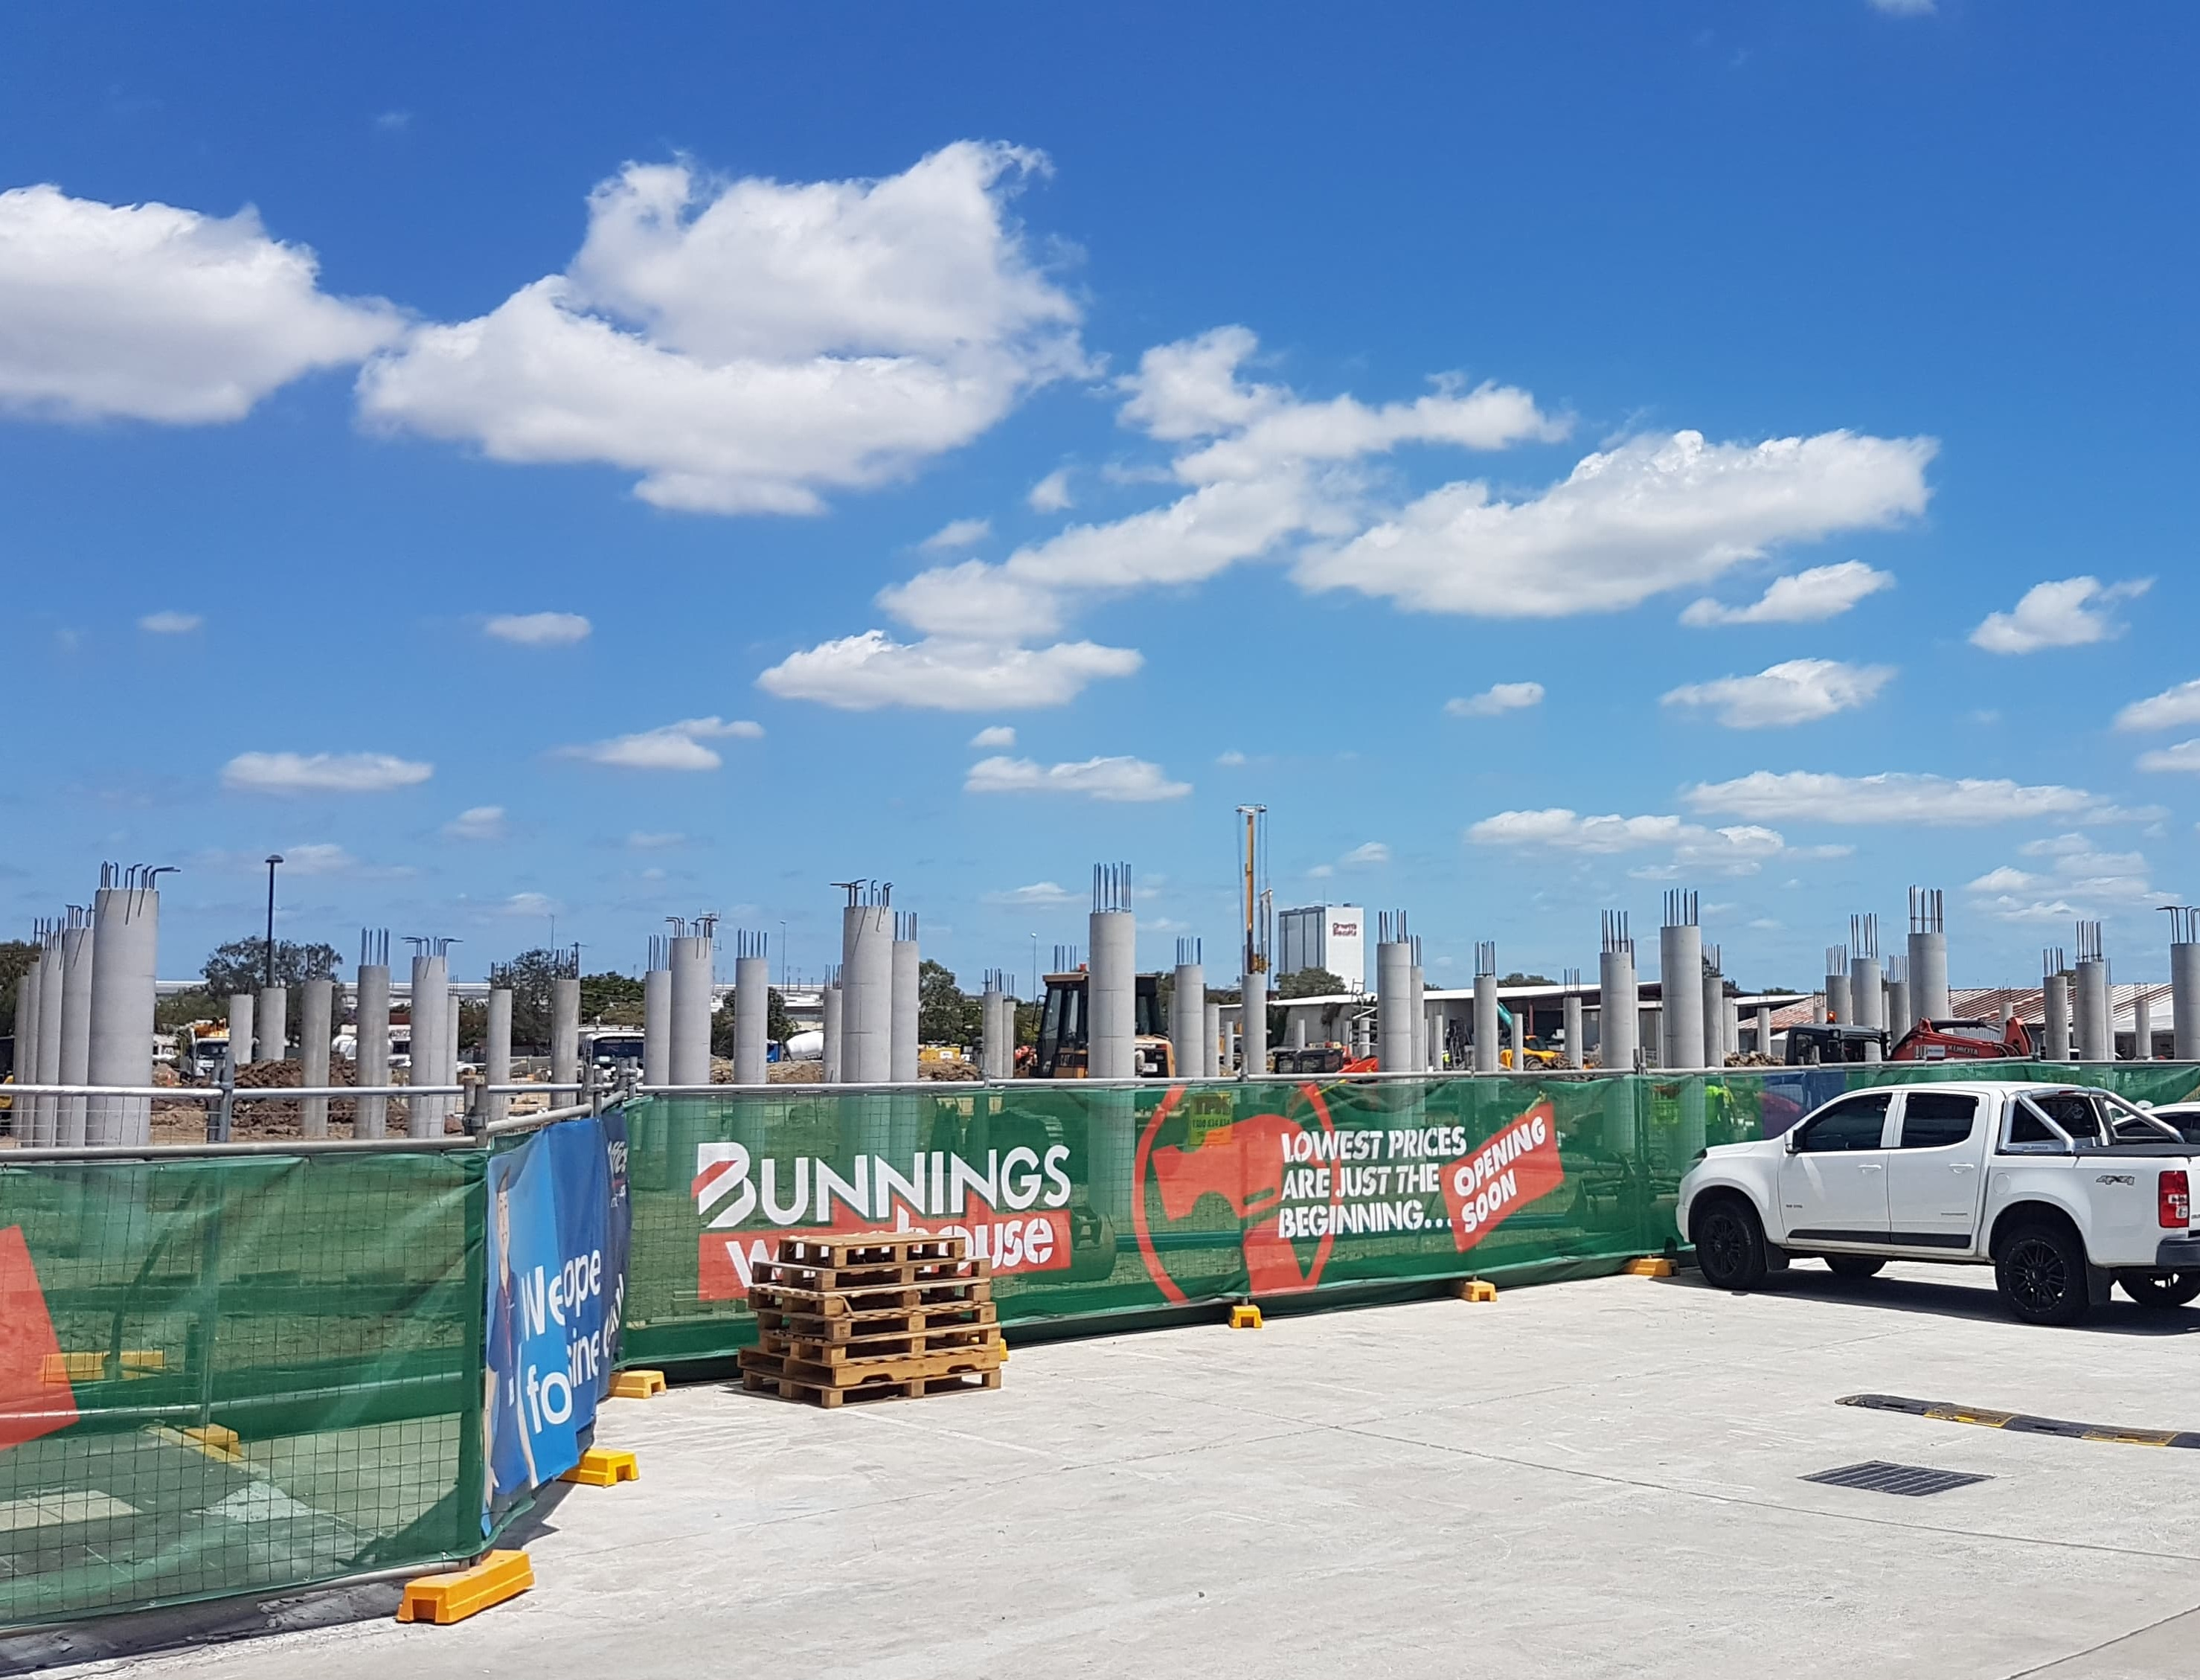 Construction Commences - Bunnings Warehouse, Virginia